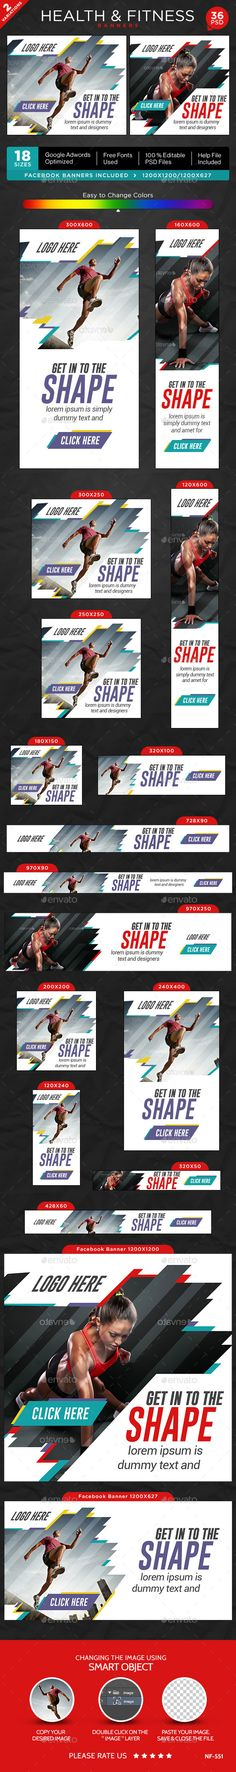 Buy Fitness Banners - 2 Sets by Hyov on GraphicRiver. Promote your Products and services related to fitness niche with this great looking Banner Set. Sports Banners, Hispanic Men, Banner Template, 2 Set, Glitch, Banner Design, Fonts, Health Fitness, Poster